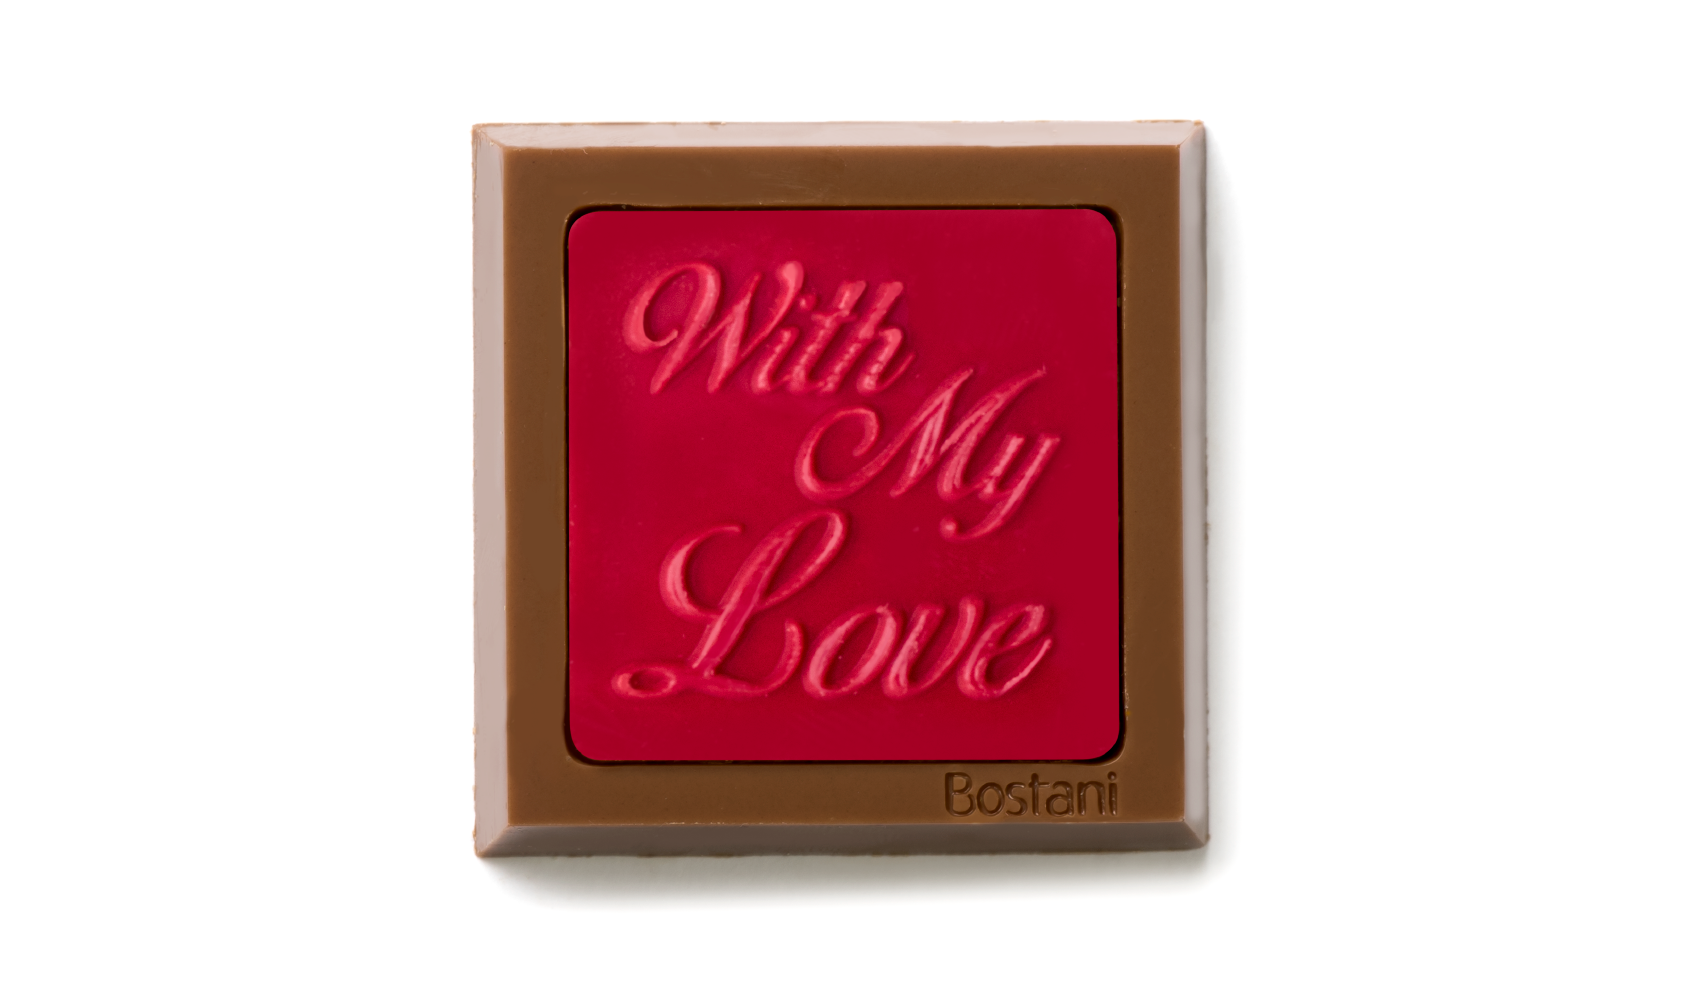 With my love square Red Color 100g